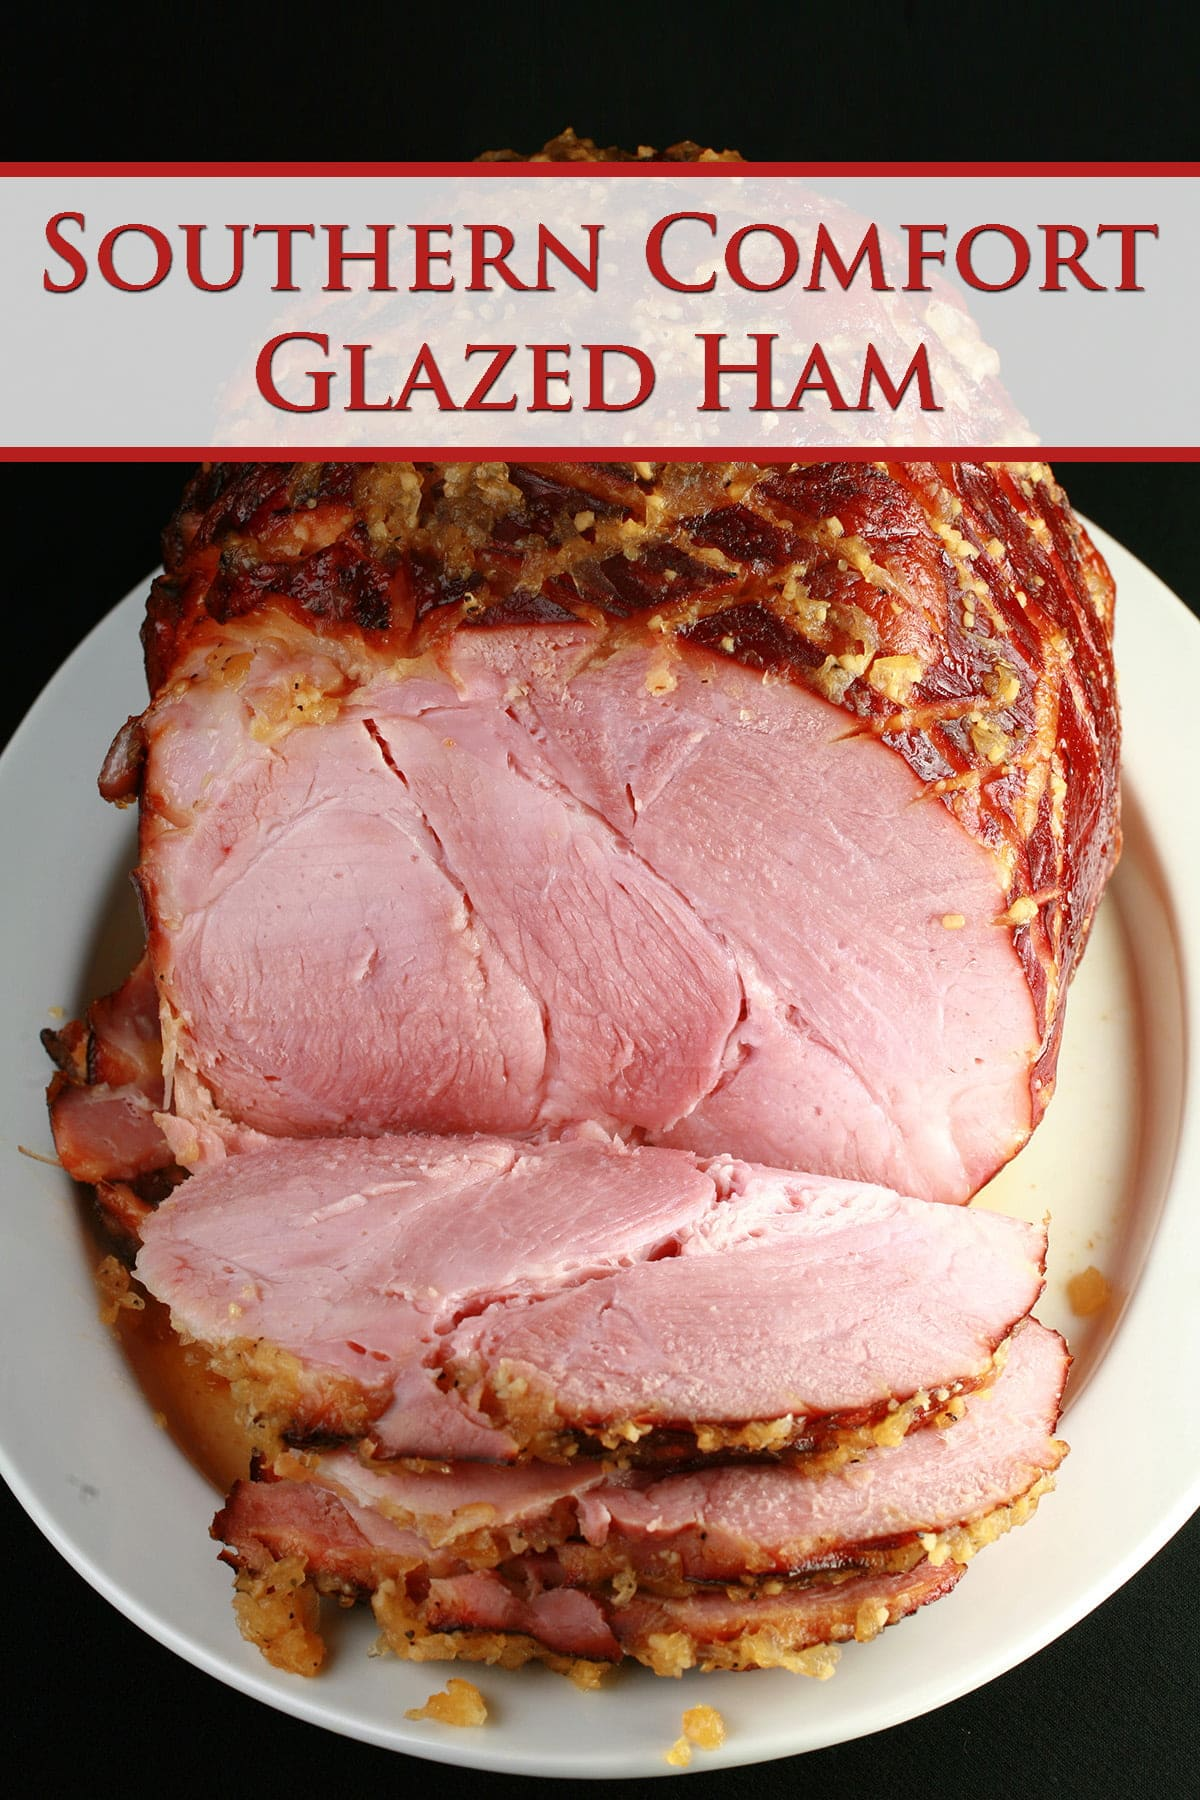 A large ham on a white platter.  There are several generous slices of ham in the foreground.